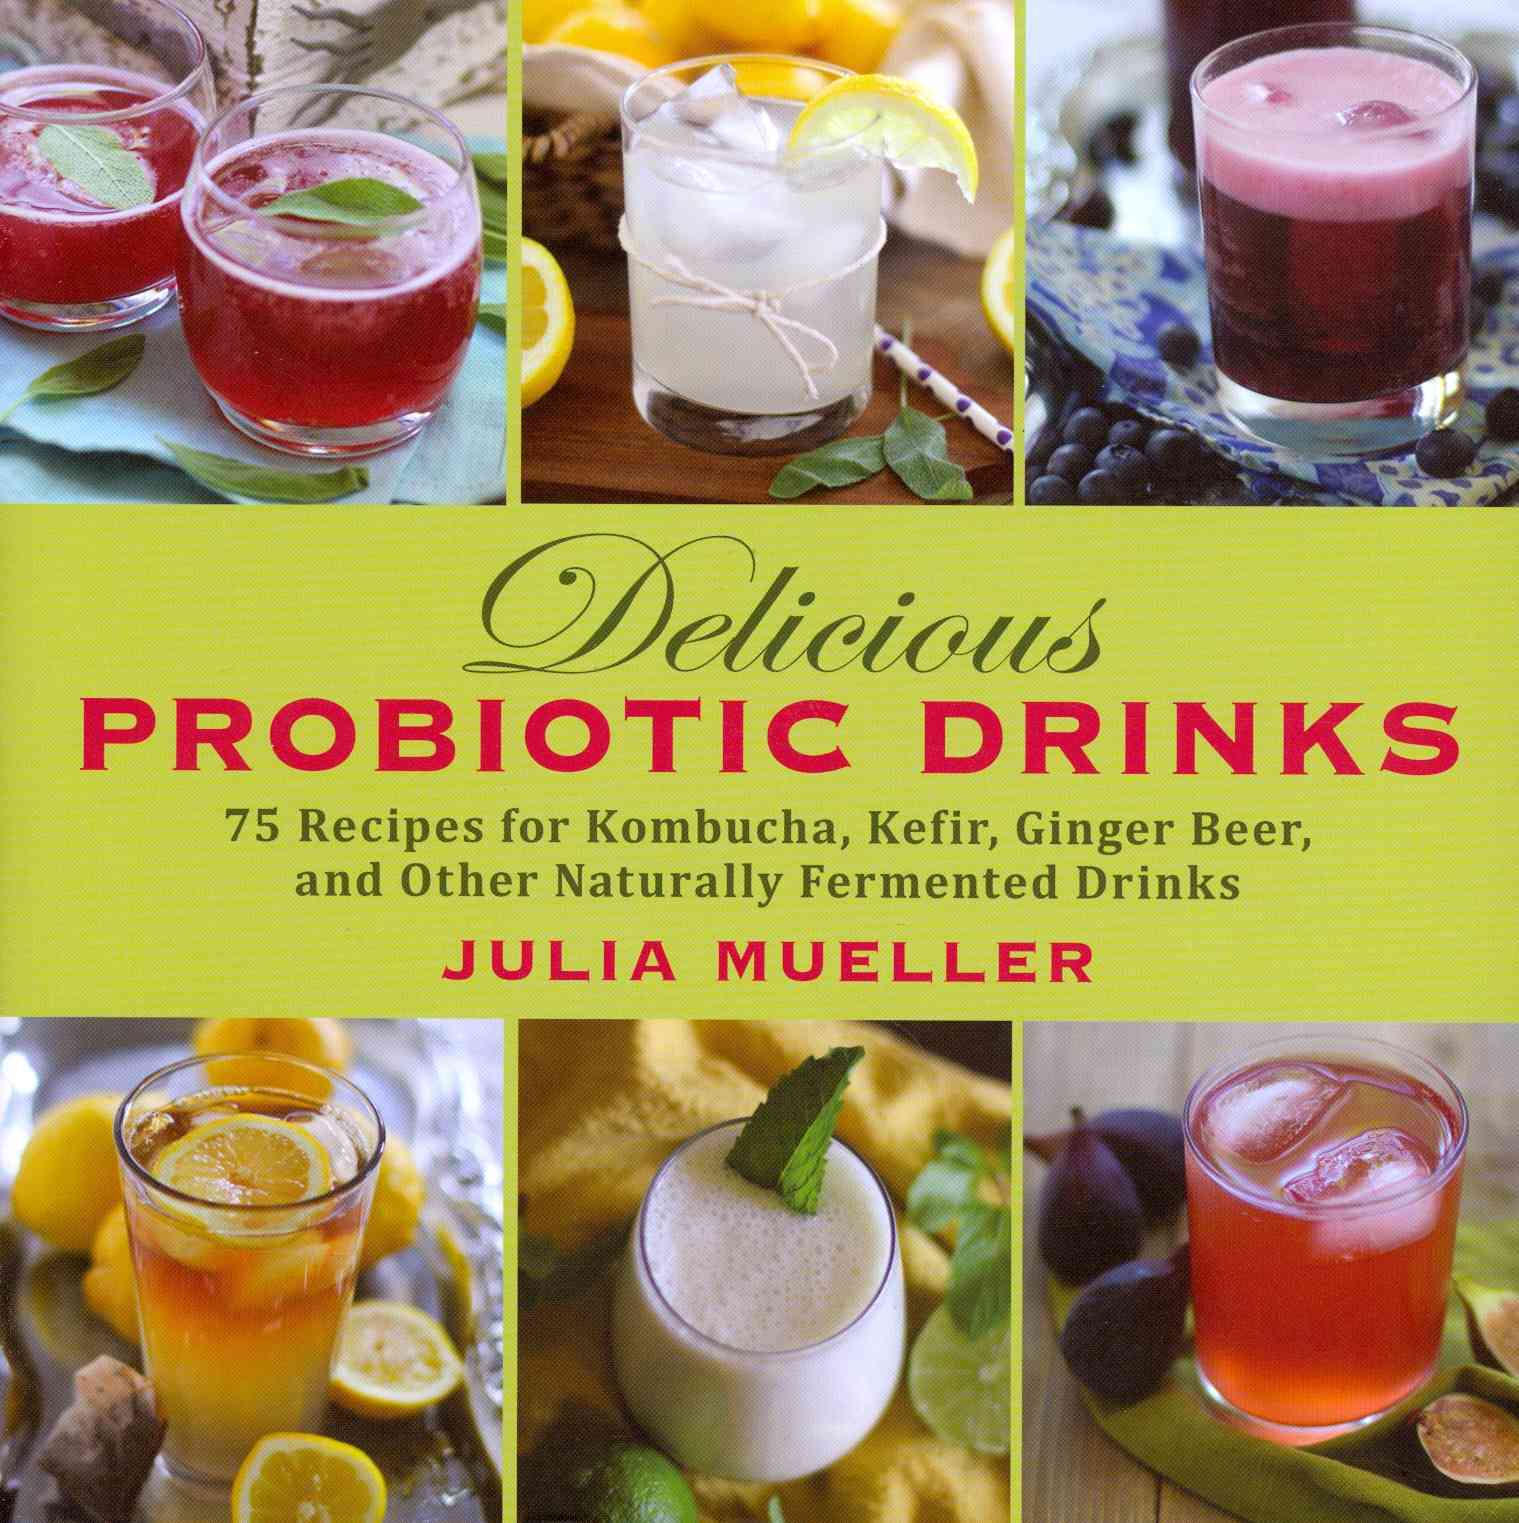 Delicious Probiotic Drinks: 75 Recipes for Kombucha, Kefir, Ginger Beer, and Other Naturally Fermented Drinks (Hardcover)